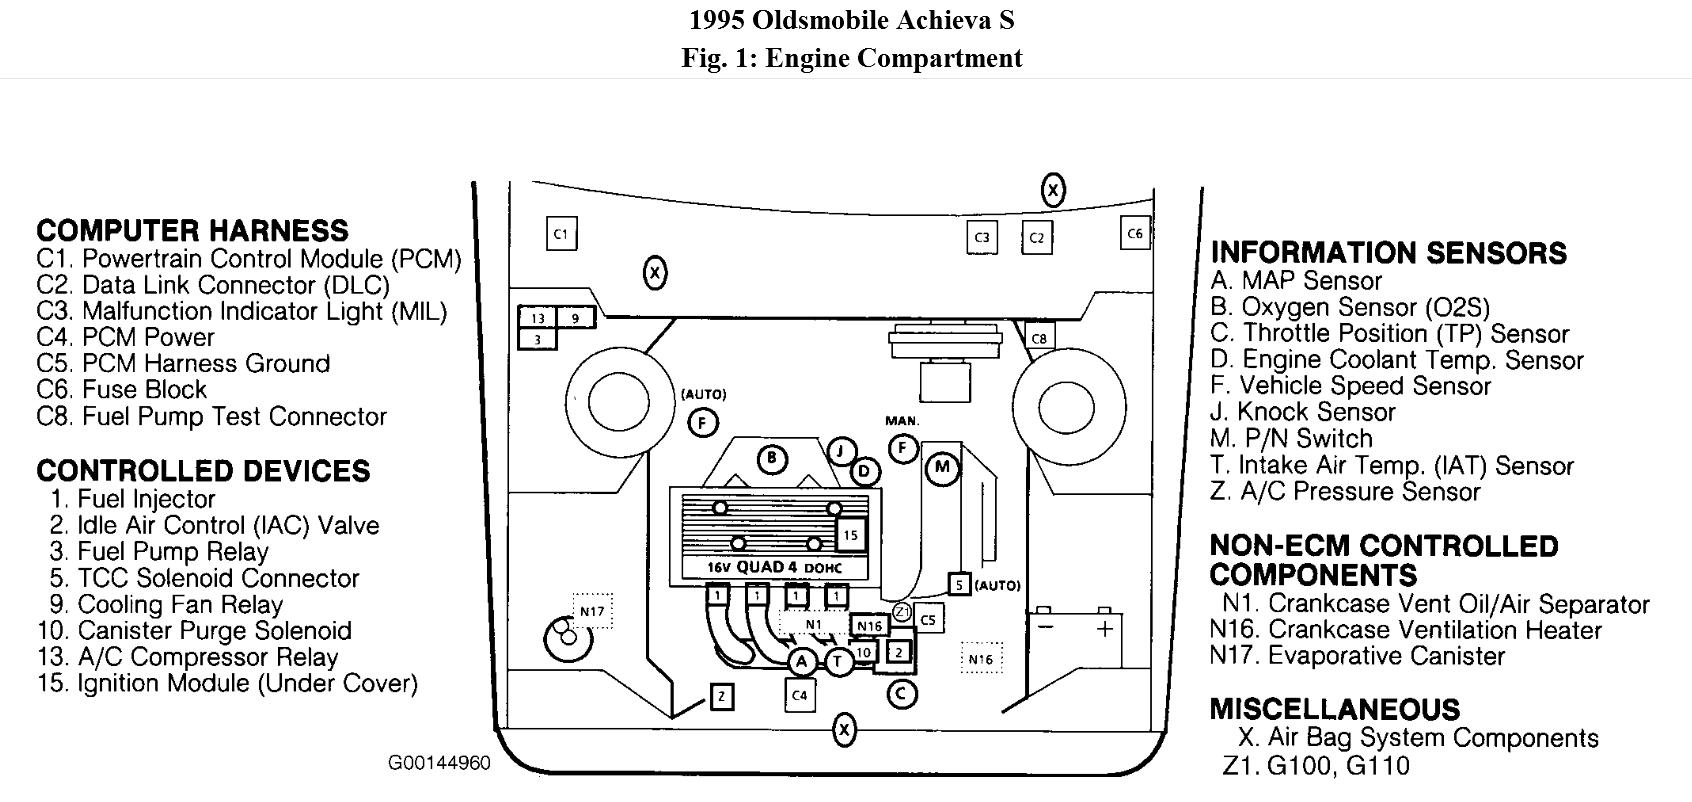 1995 Oldsmobile Achieva Engine Diagram Expert Category Circuit Diagrams Electrical Cumputer Wiring Pdfklipcsh Where Is The Canister Purge Valve Solenoid Located Rh 2carpros Com